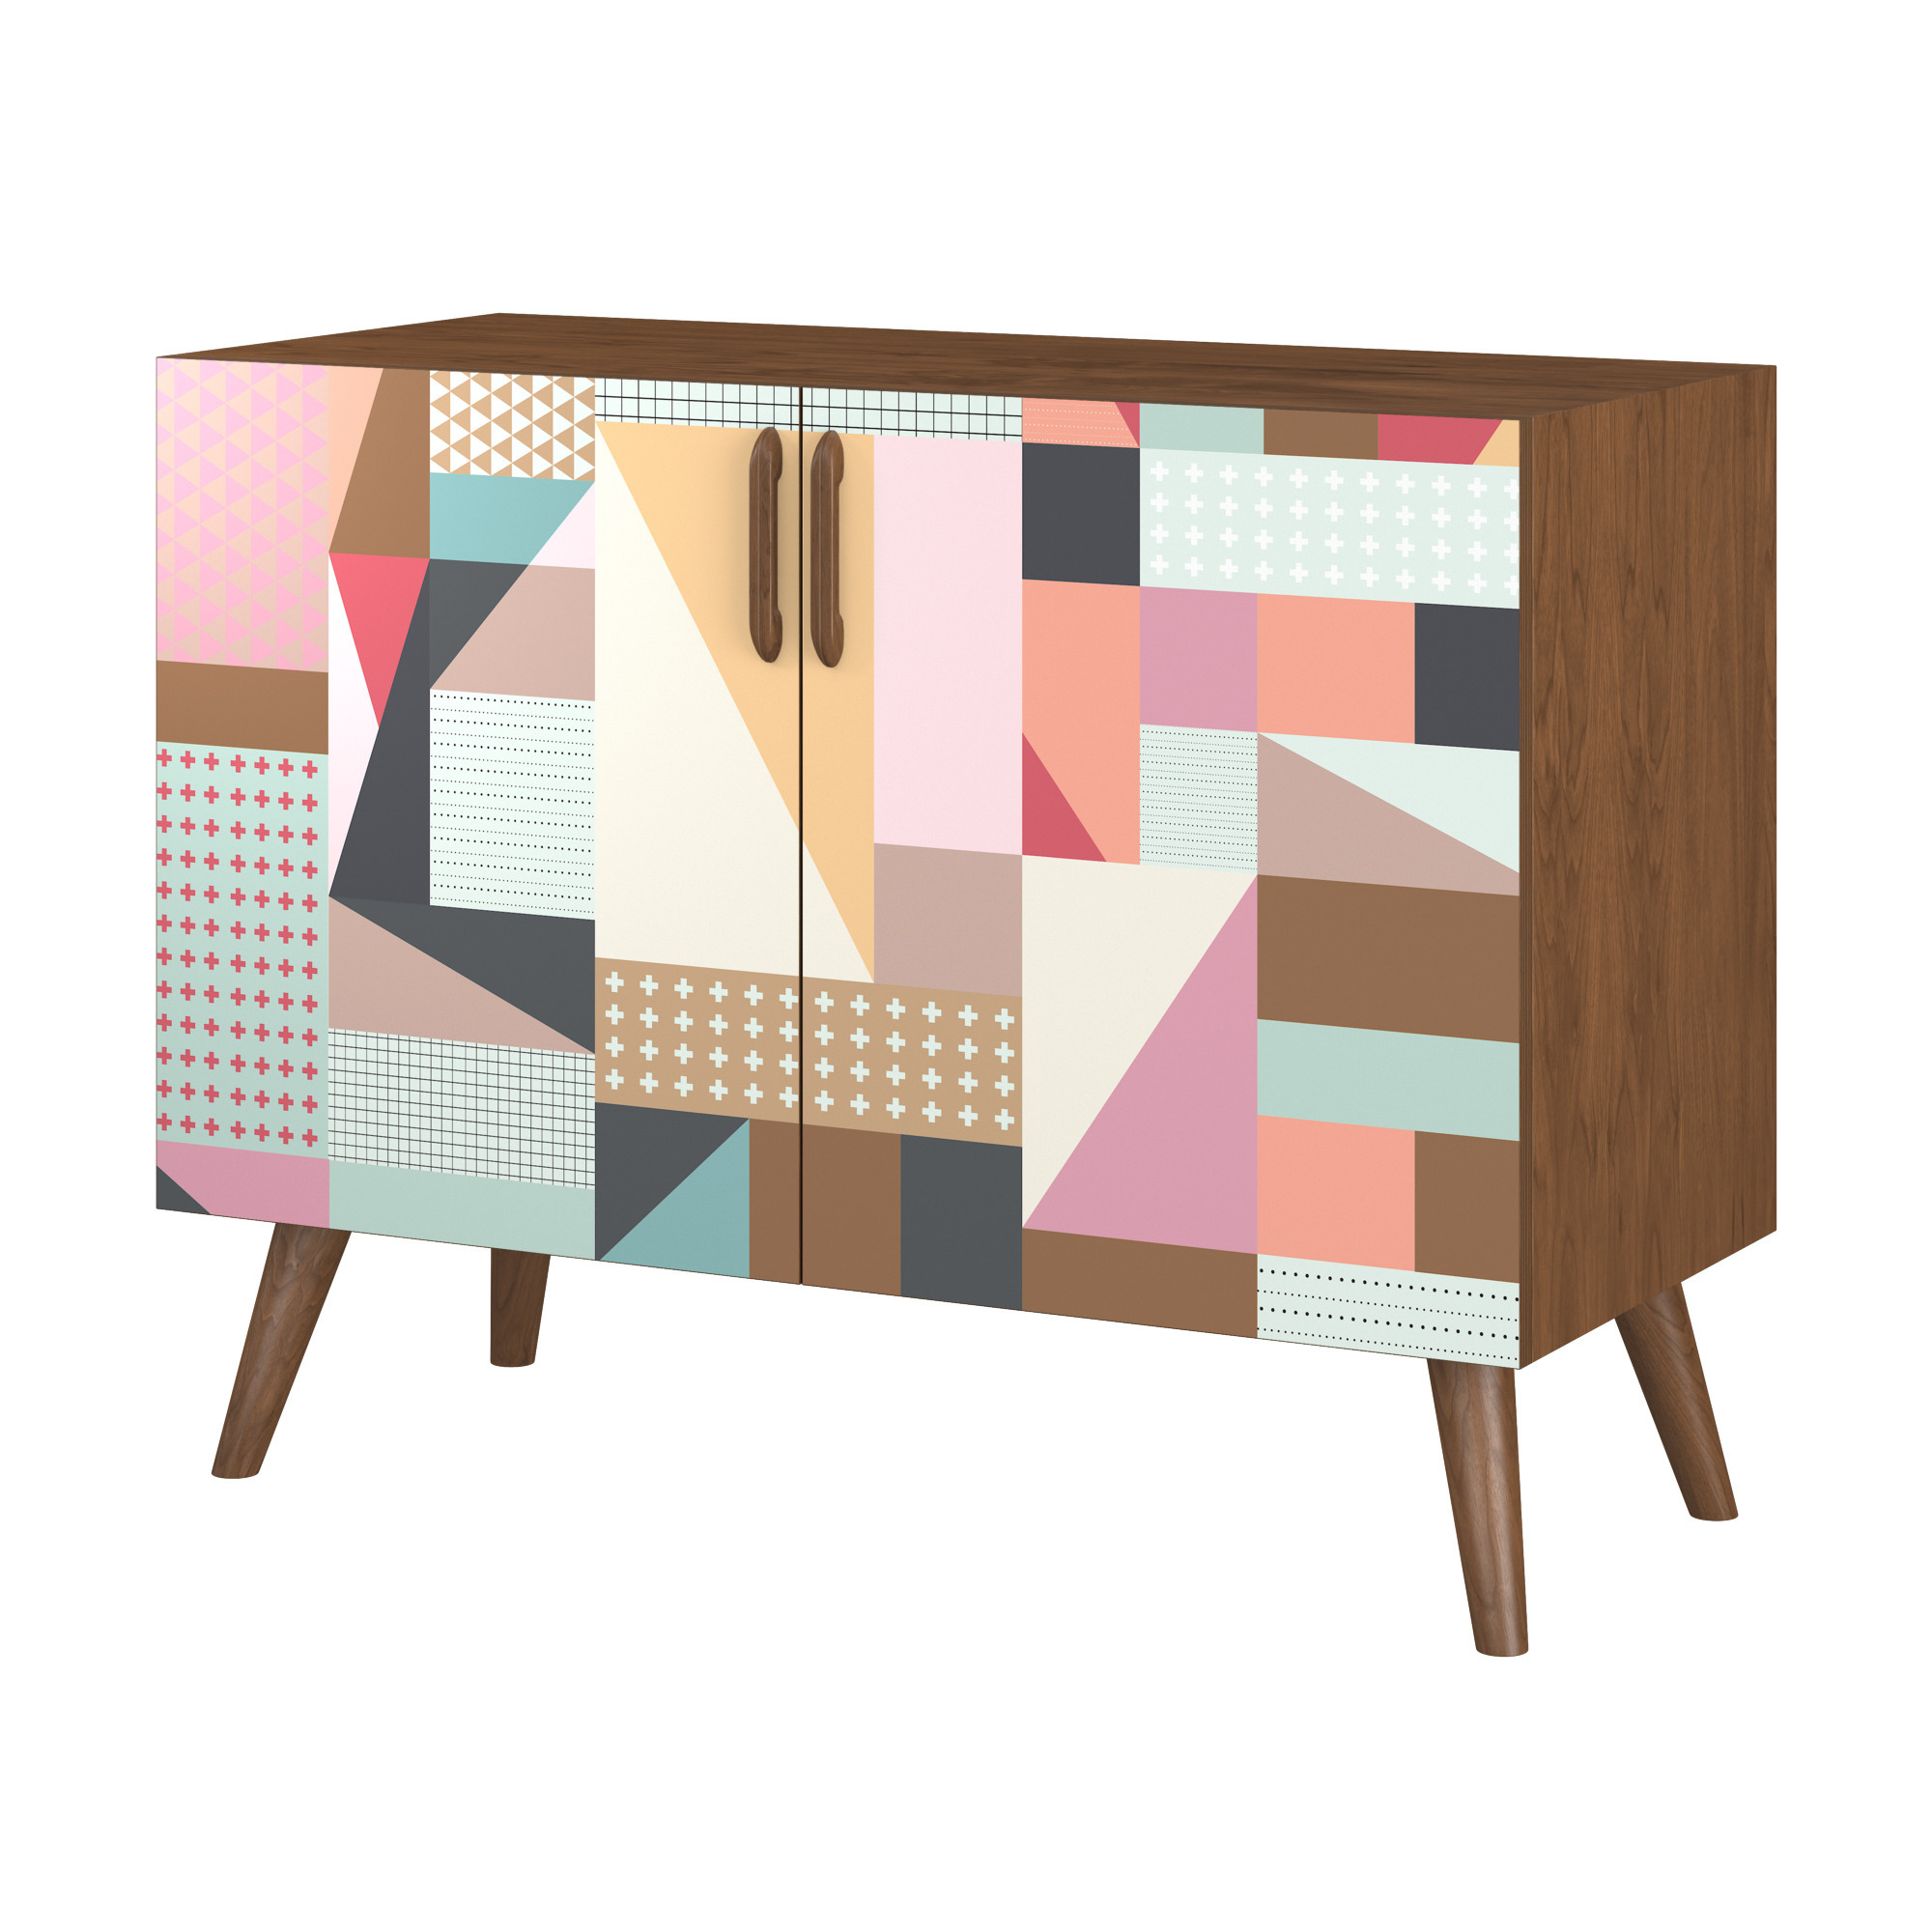 Customize Credenzas | Snugsquare Pertaining To Southwest Pink Credenzas (View 6 of 20)